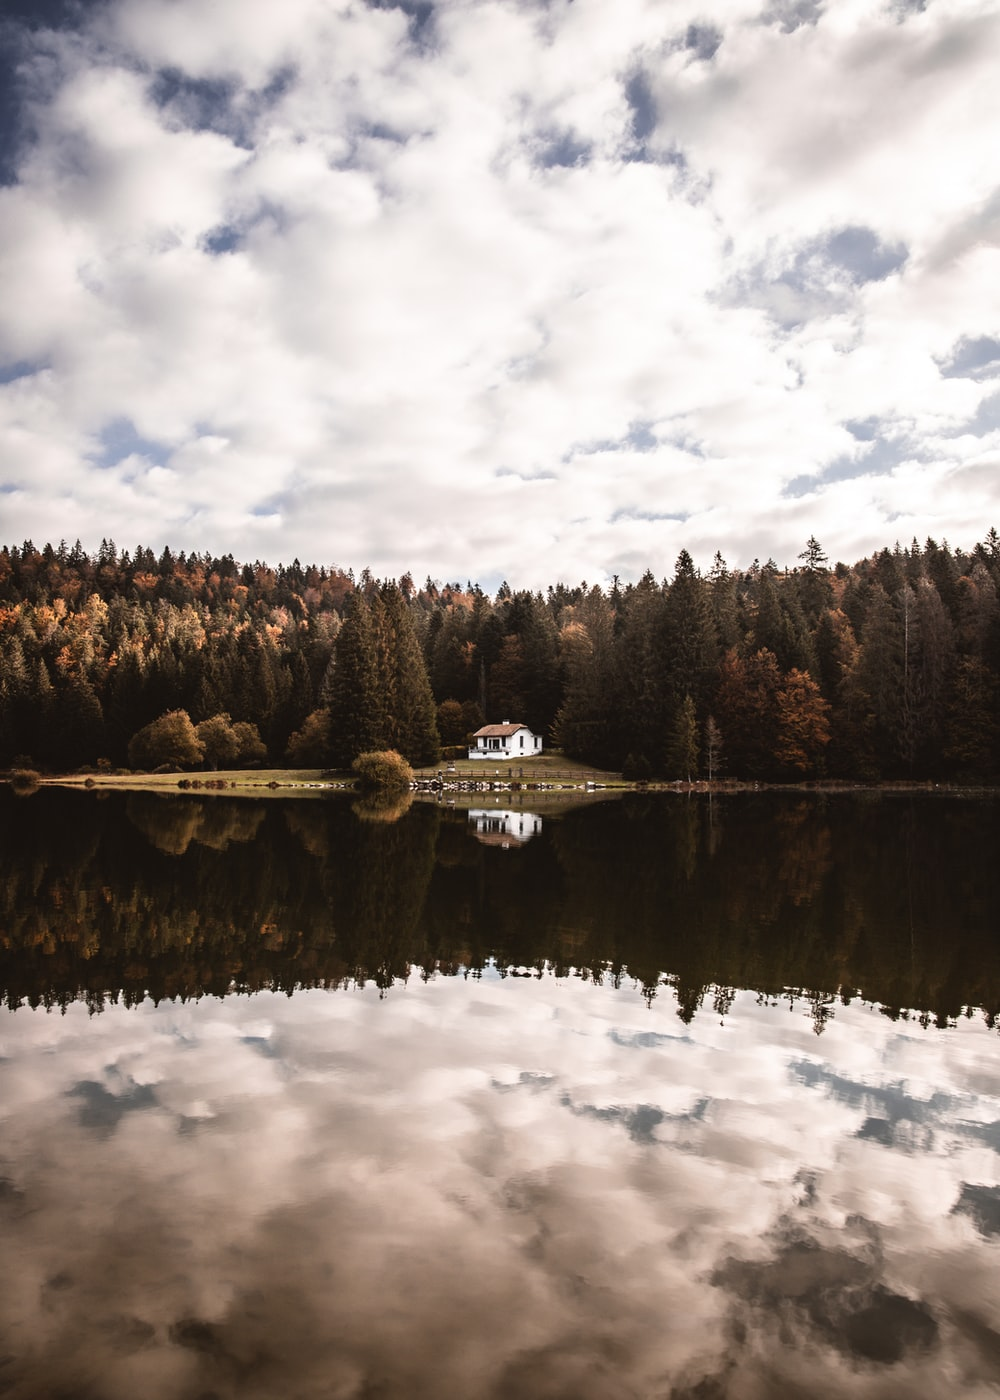 white and black boat on lake near green trees under white clouds and blue sky during